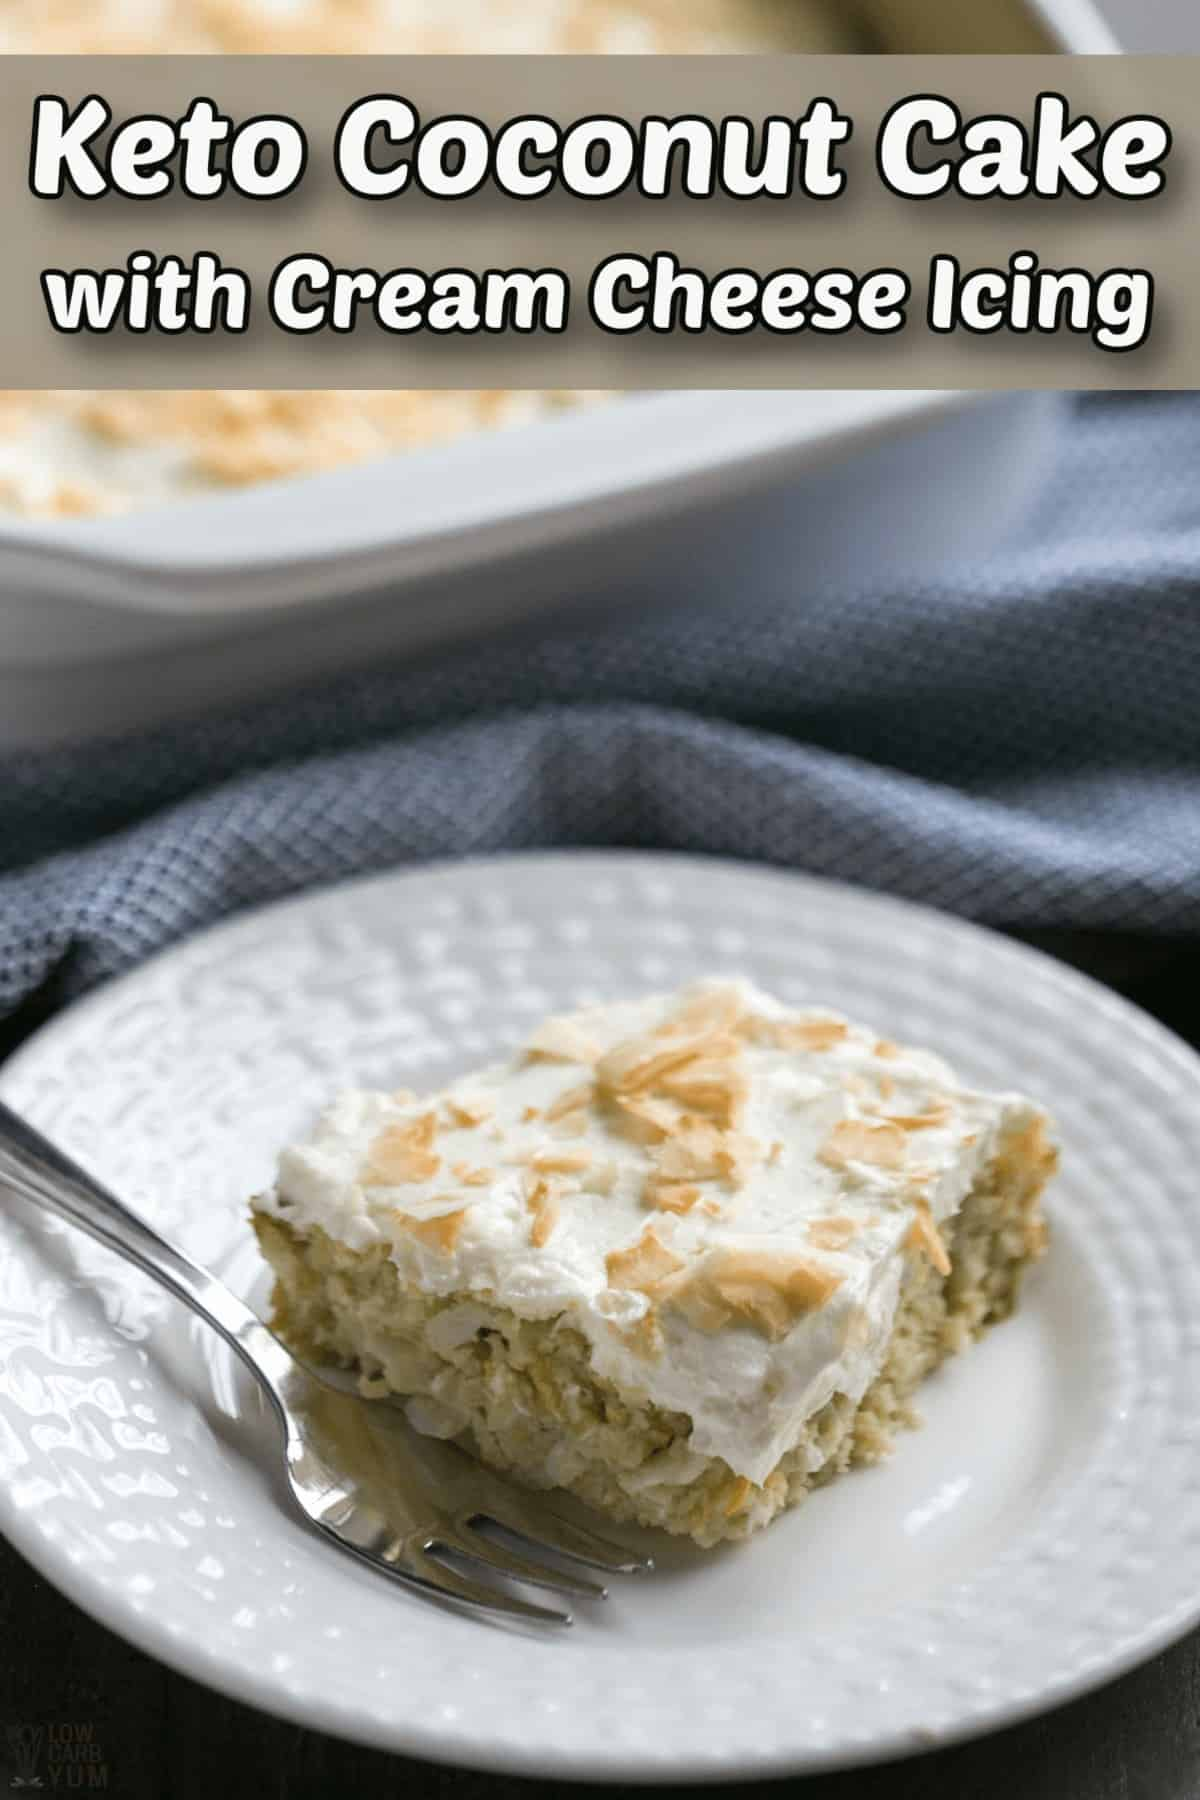 keto coconut cake with cream cheese icing pintrest image